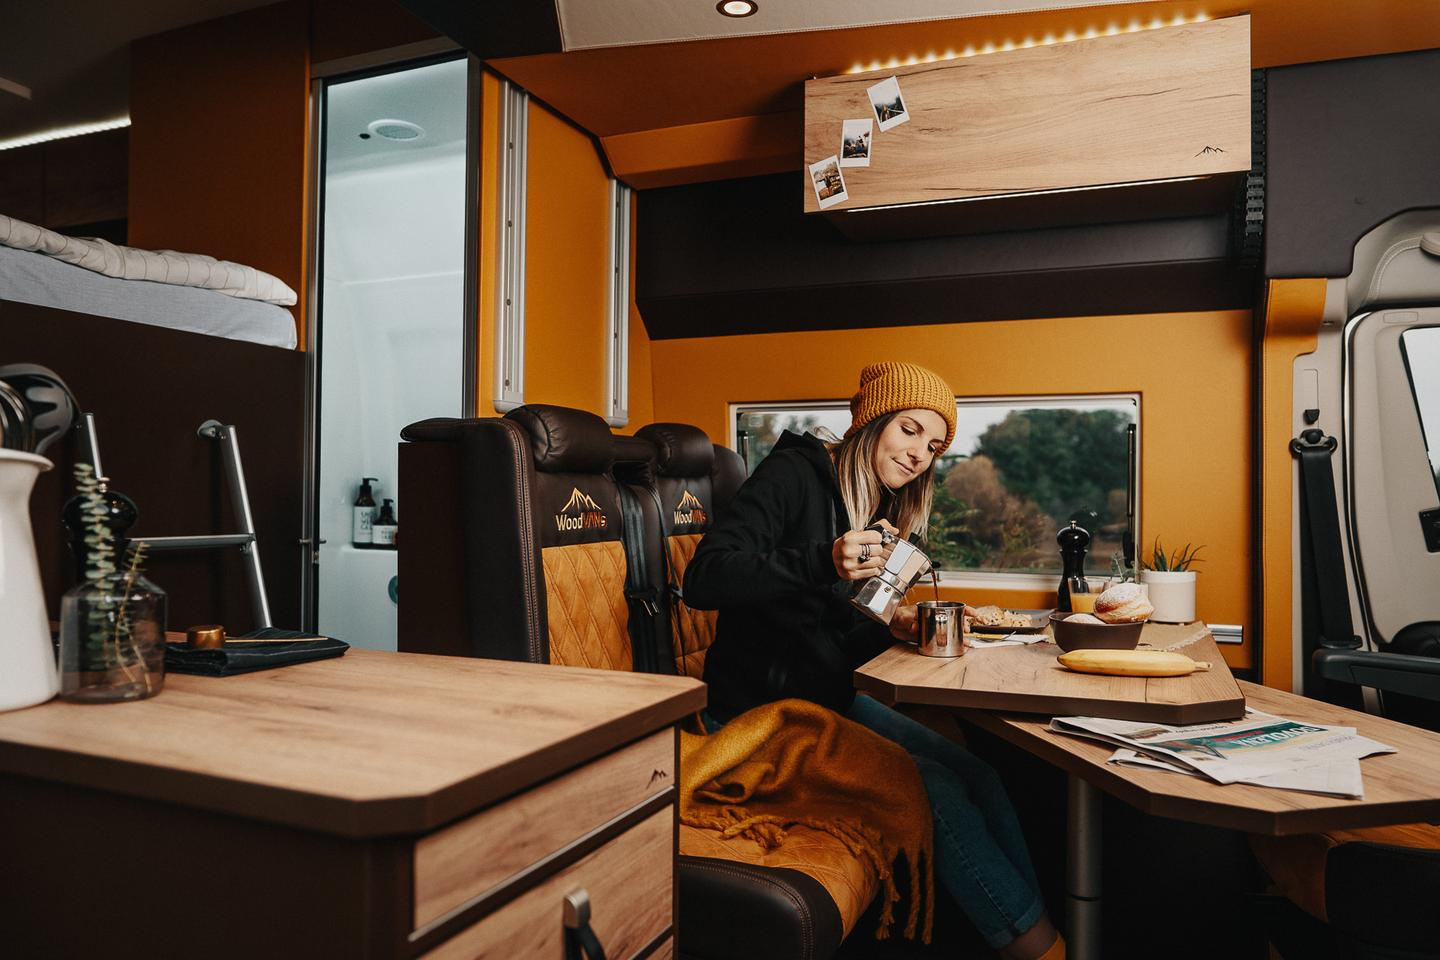 The WoodVans Moto packs in the dual-seat bench/table/swivel cab seat dinette typical of European camper vans-